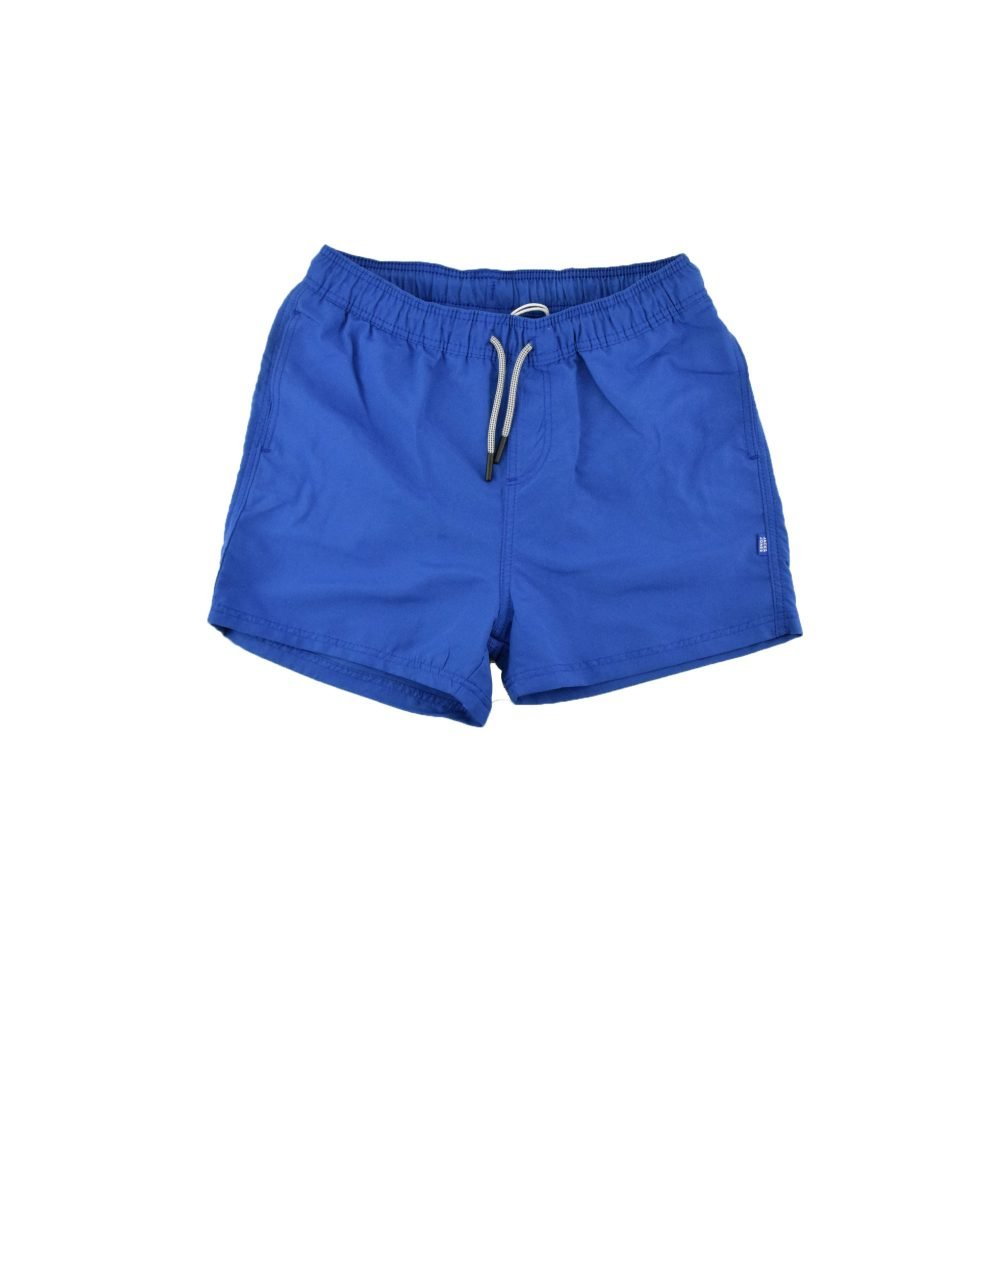 Jack & Jones Aruba Swim Shorts Solid Junior (12166328) Surf The Web